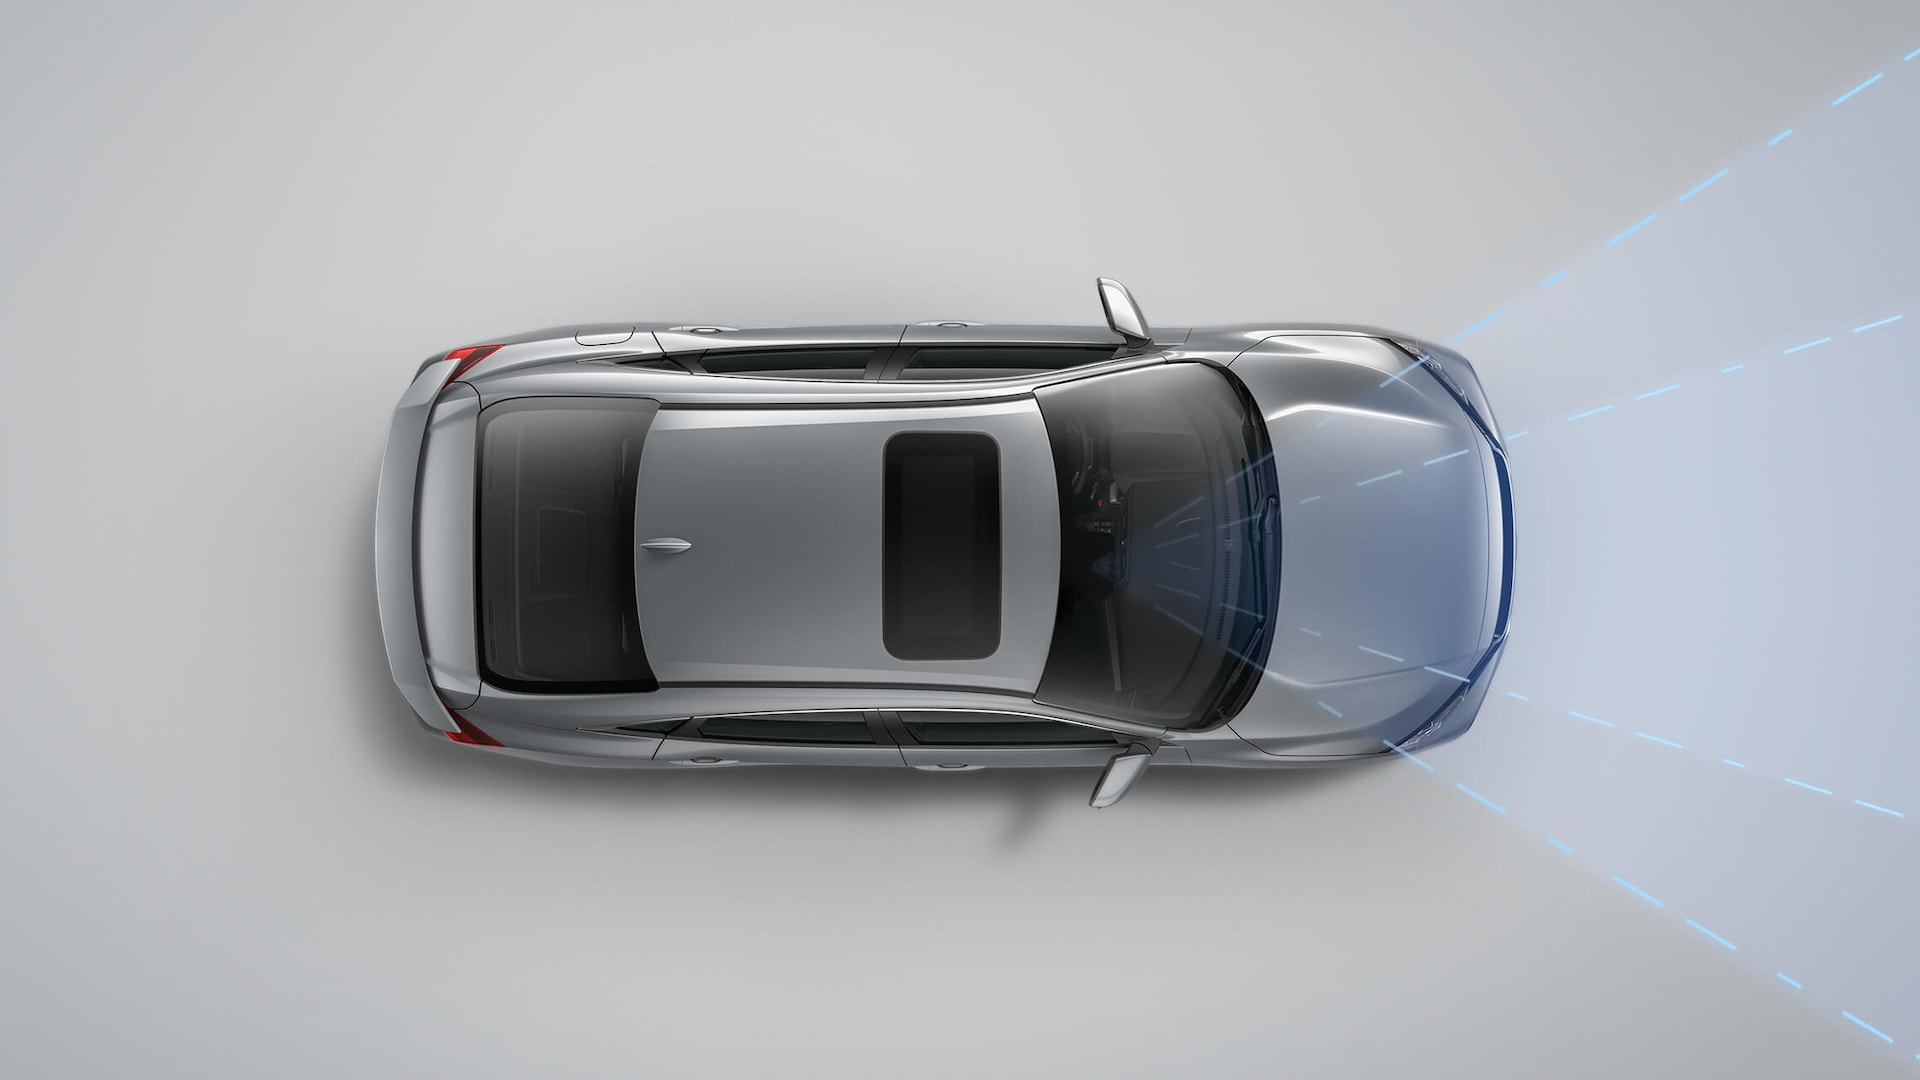 Overhead view of 2020 Honda Civic Si Sedan in Modern Steel Metallic demonstrating Lane Keeping Assist System (LKAS).